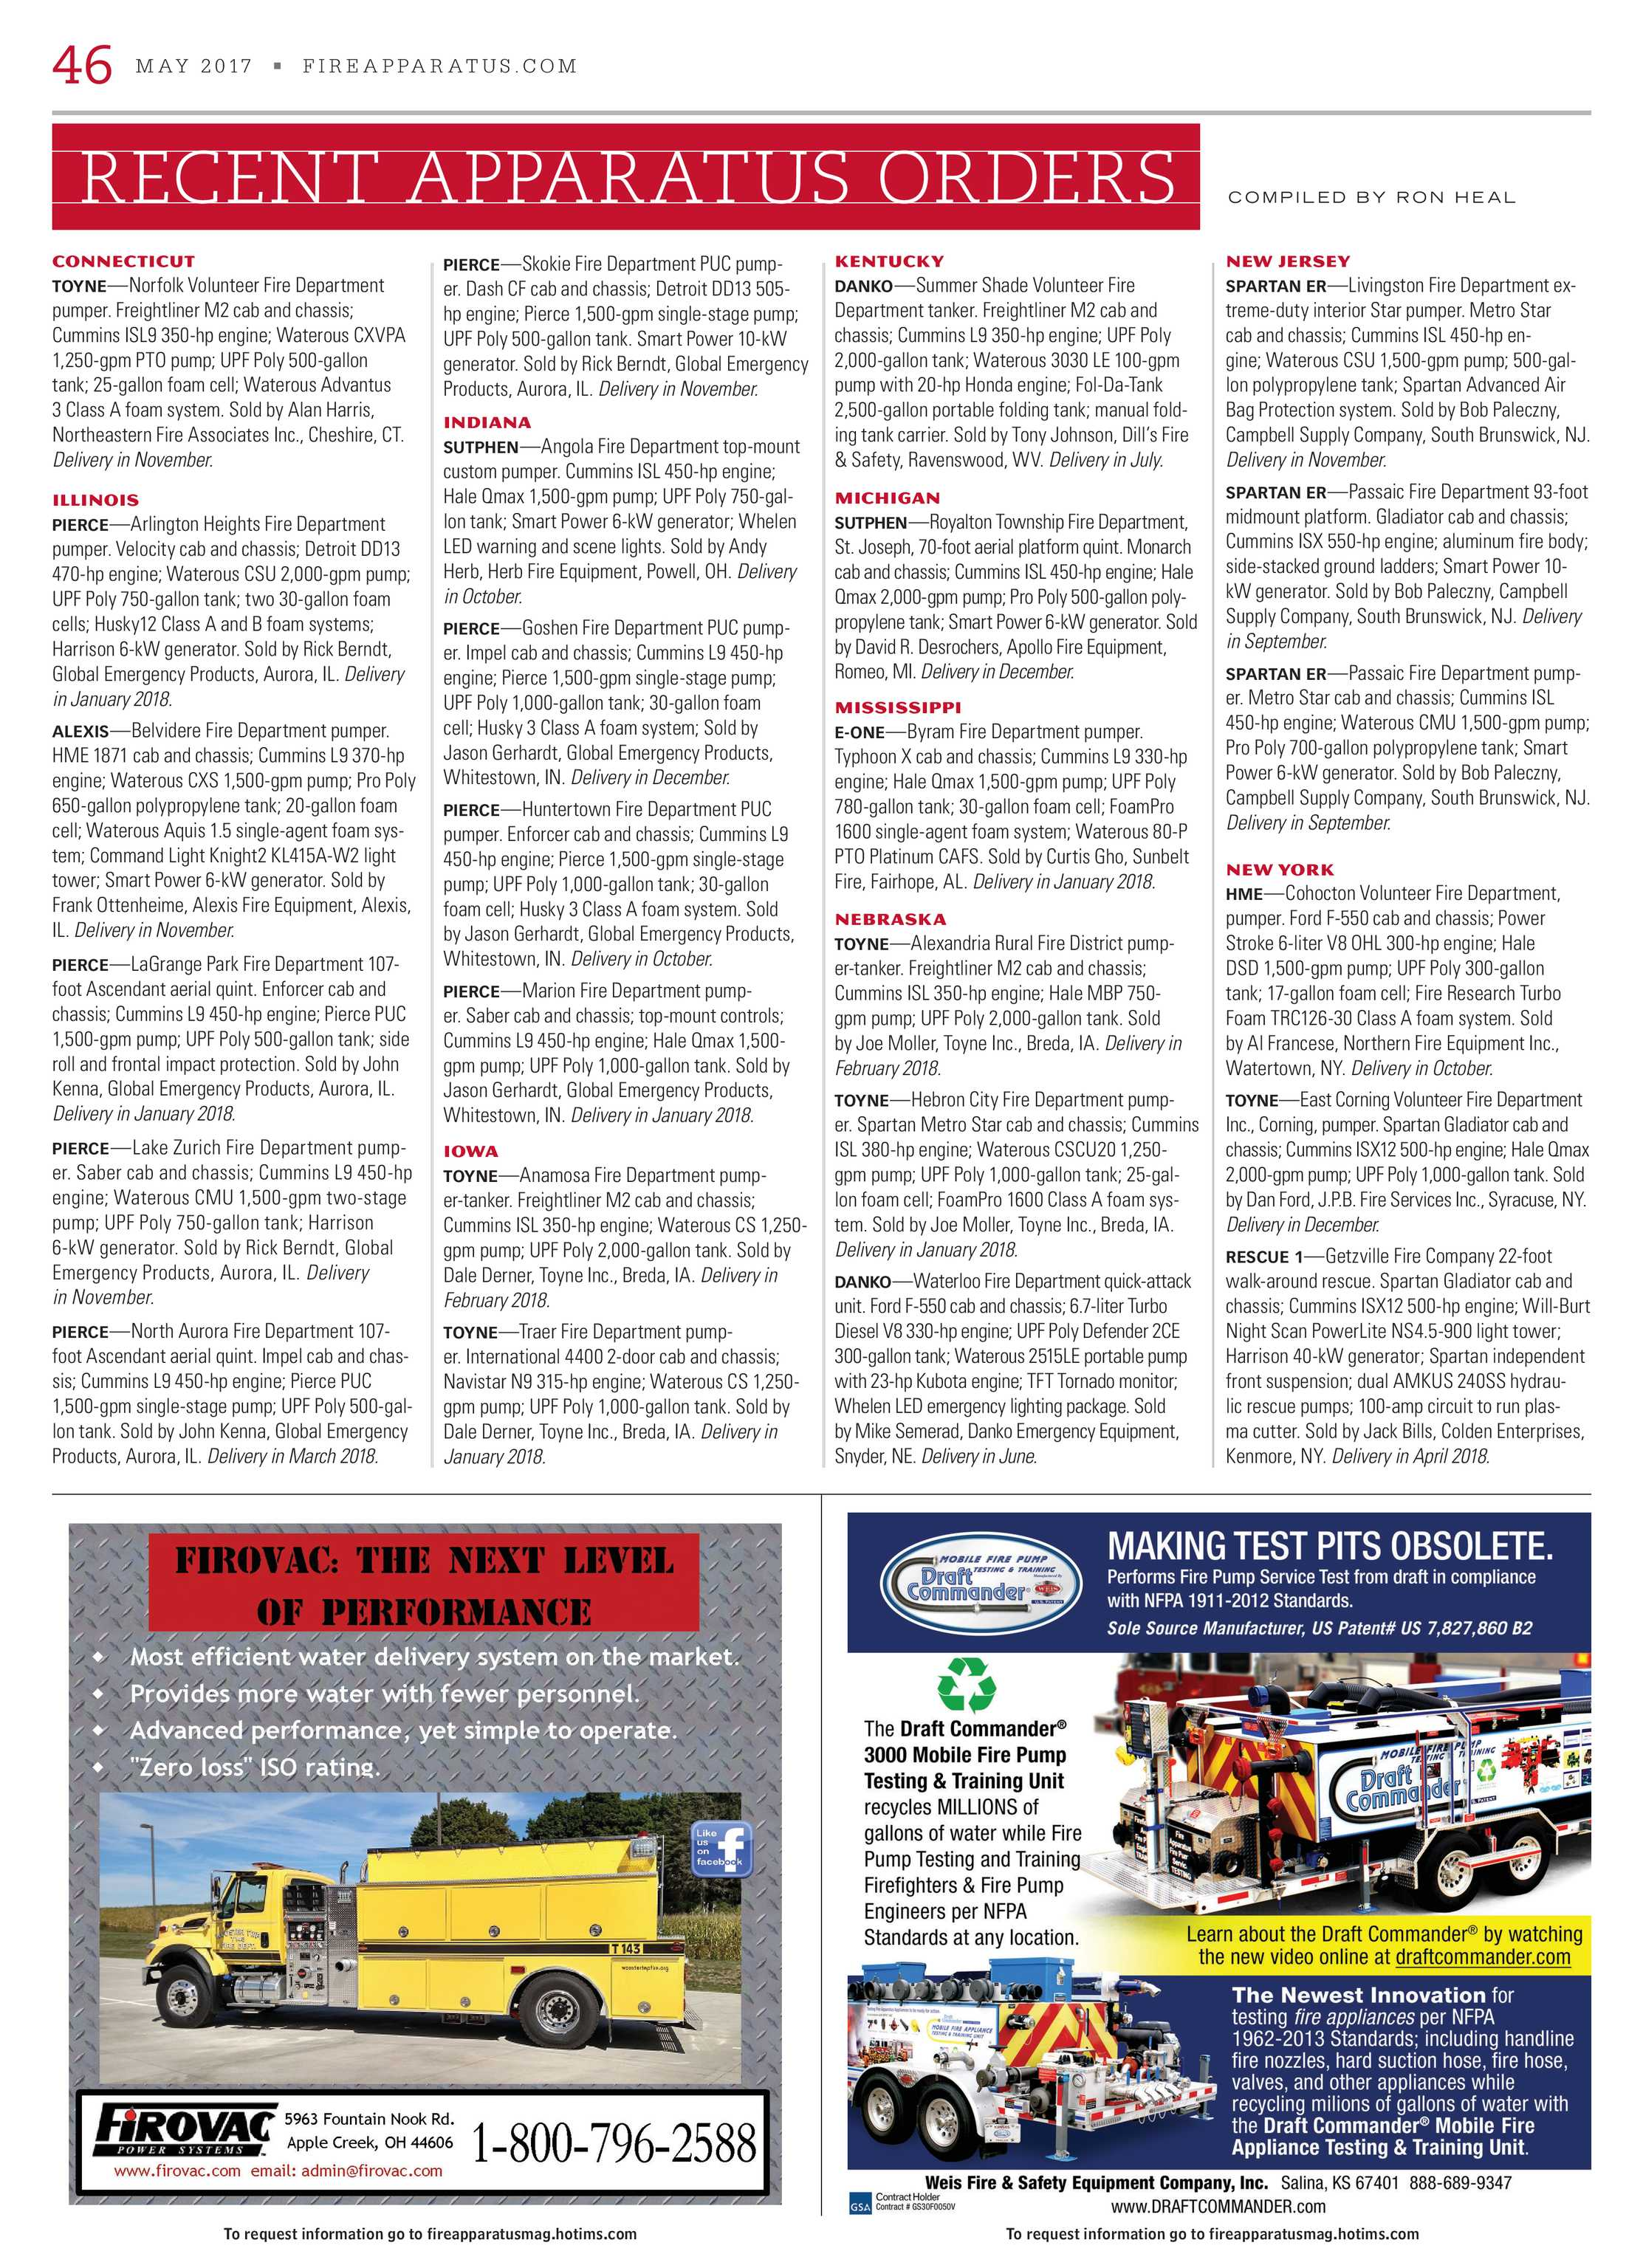 Fire Apparatus Magazine - May 2017 - page 46